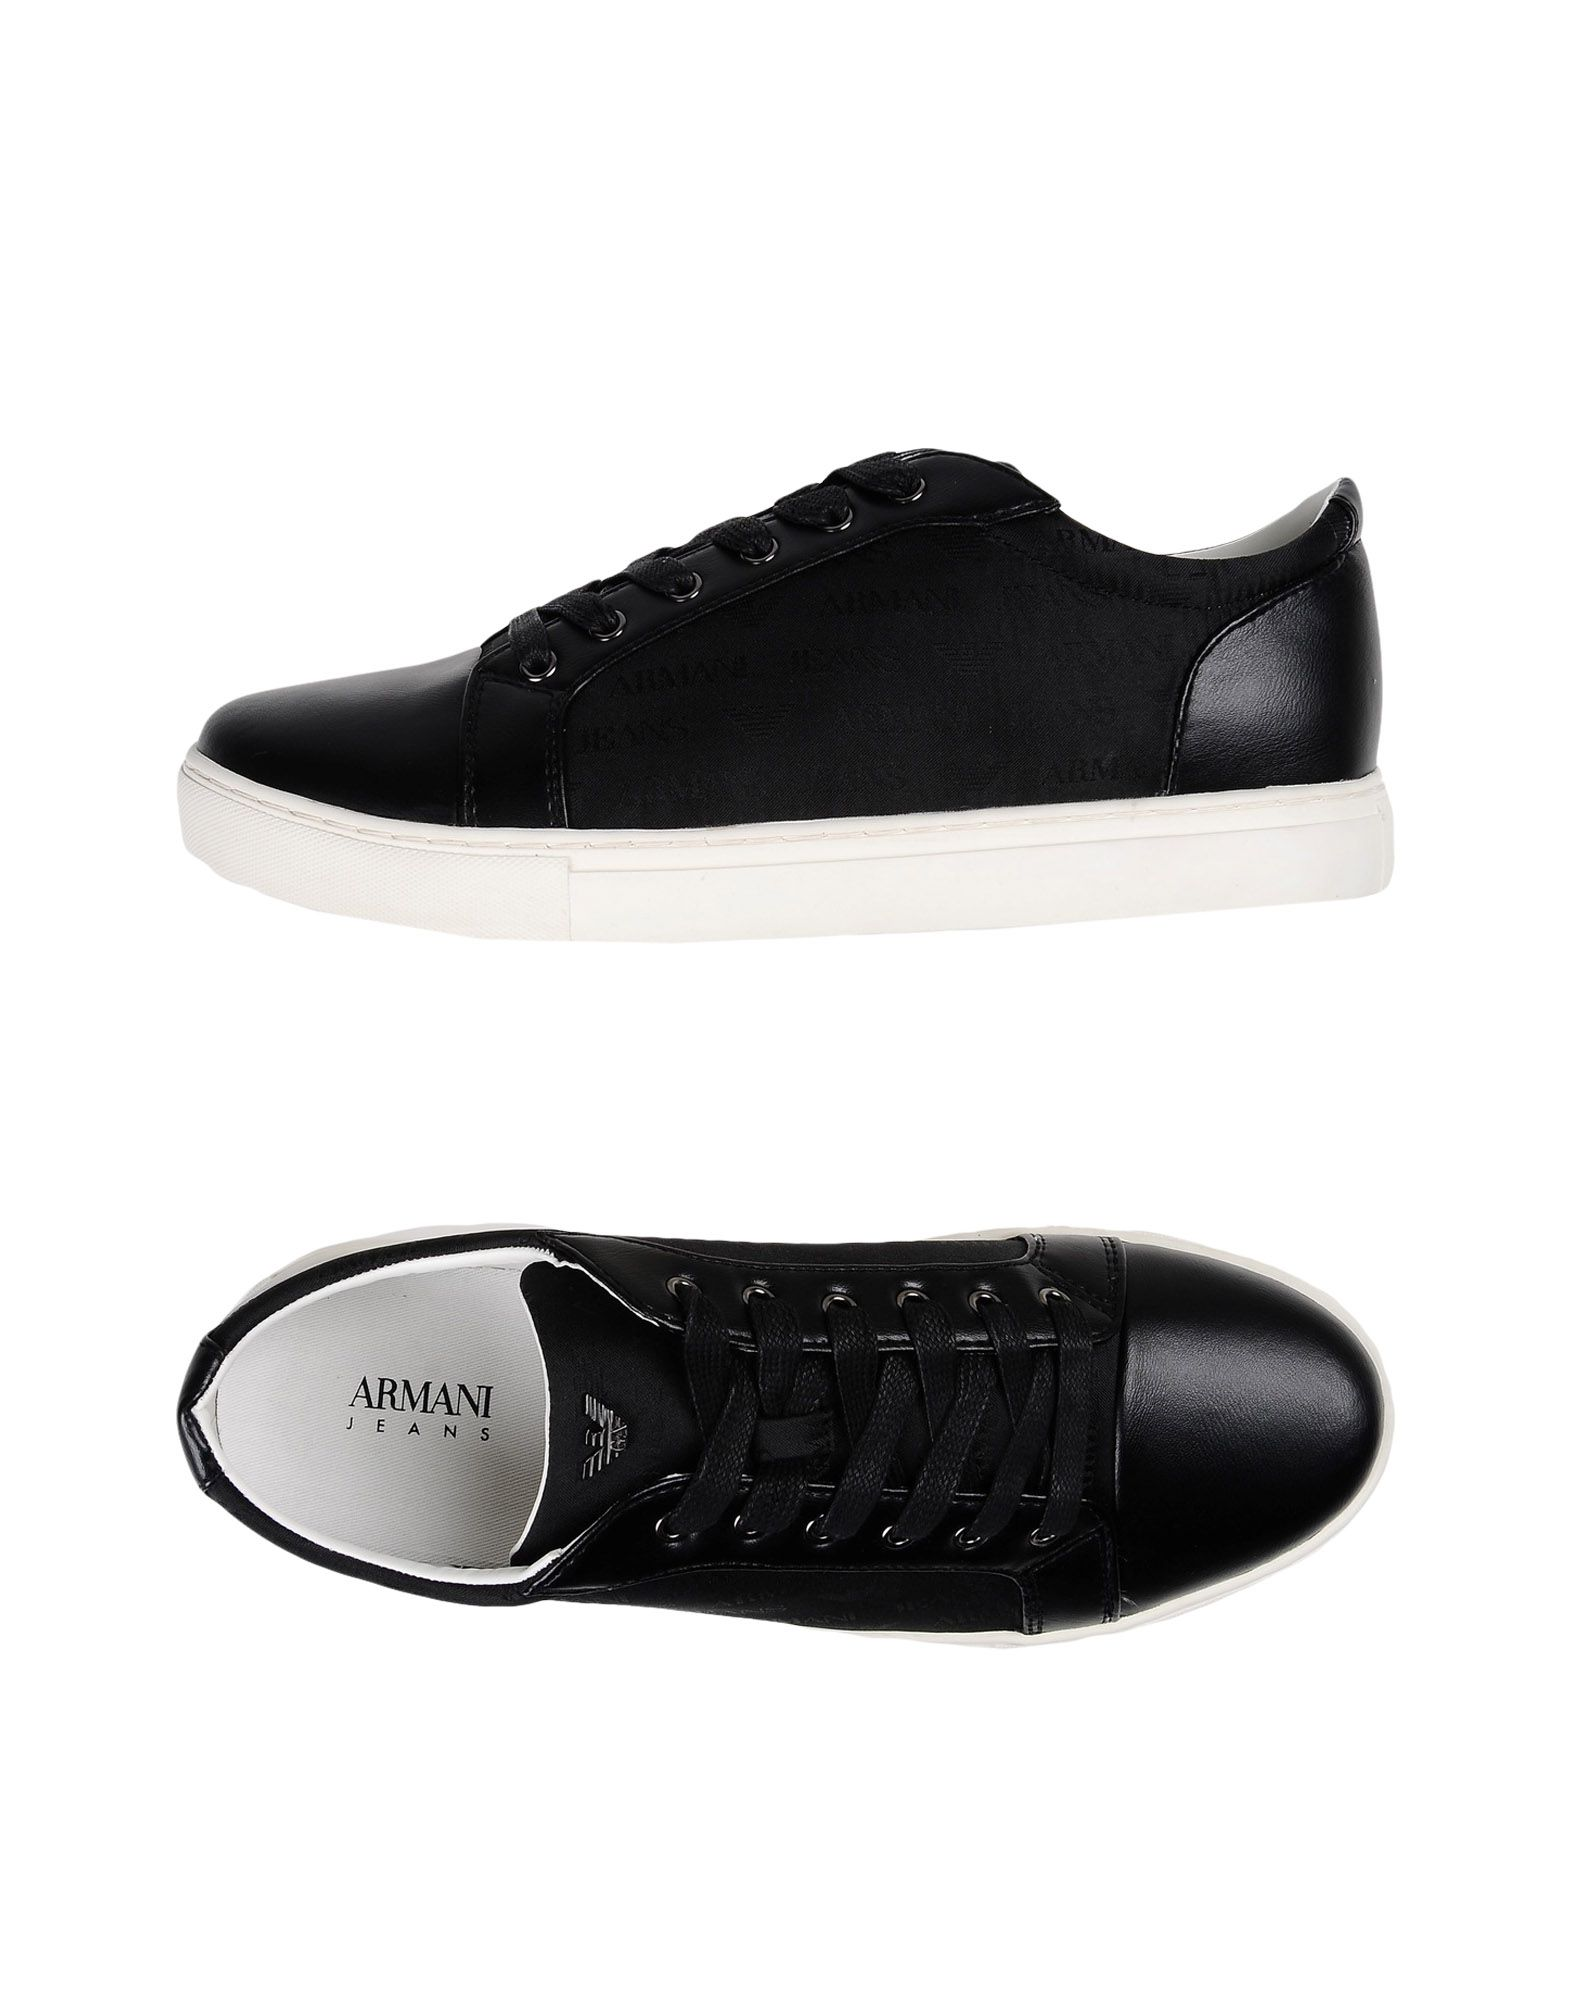 Sneakers Armani Jeans Homme - Sneakers Armani Jeans sur